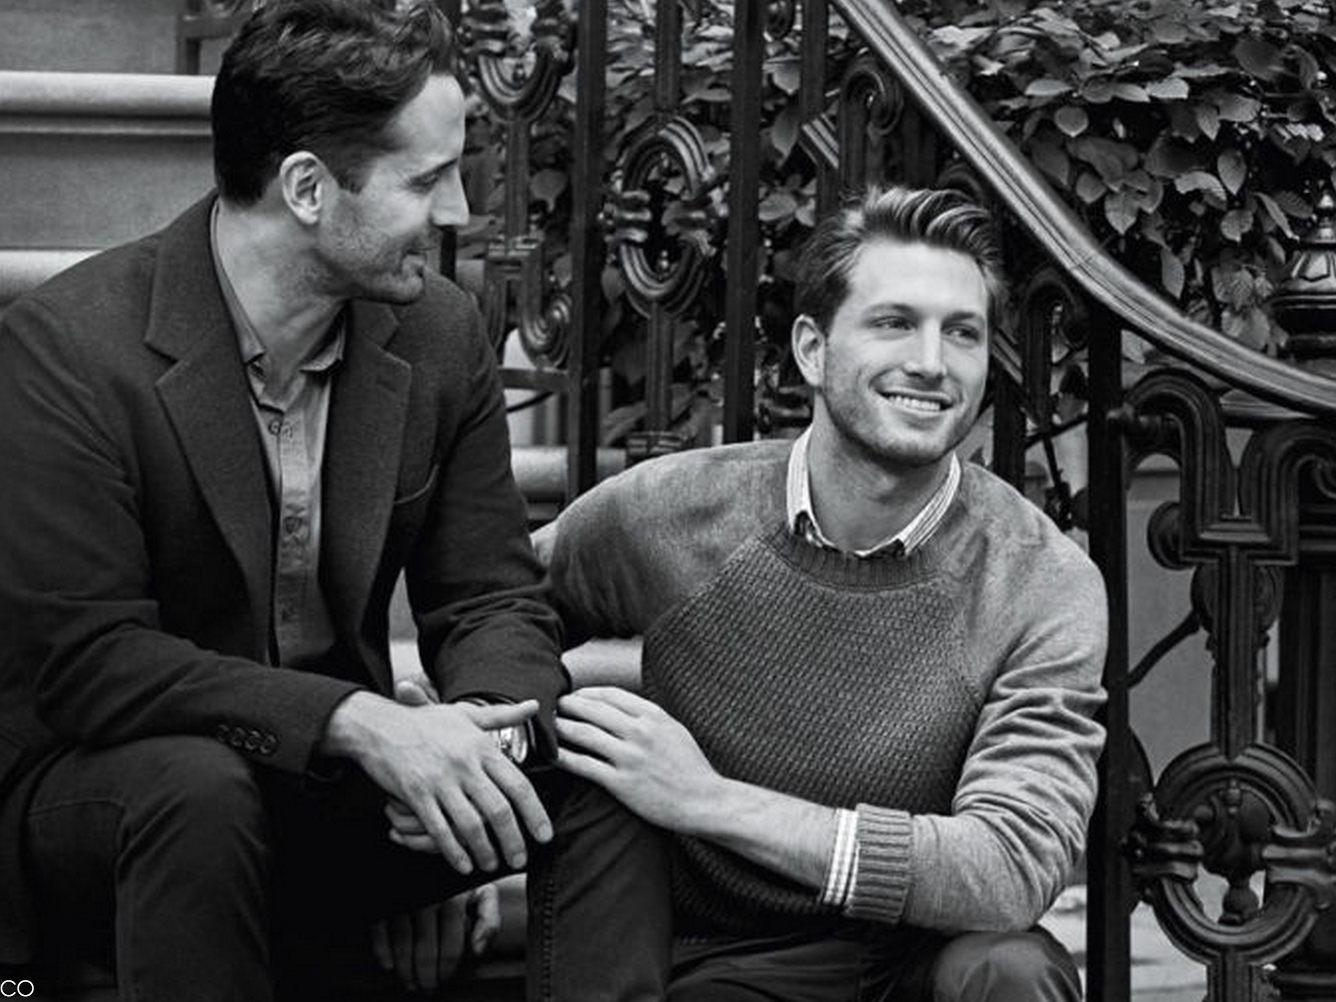 Tiffany Campaign Features Gay Couple for First Time